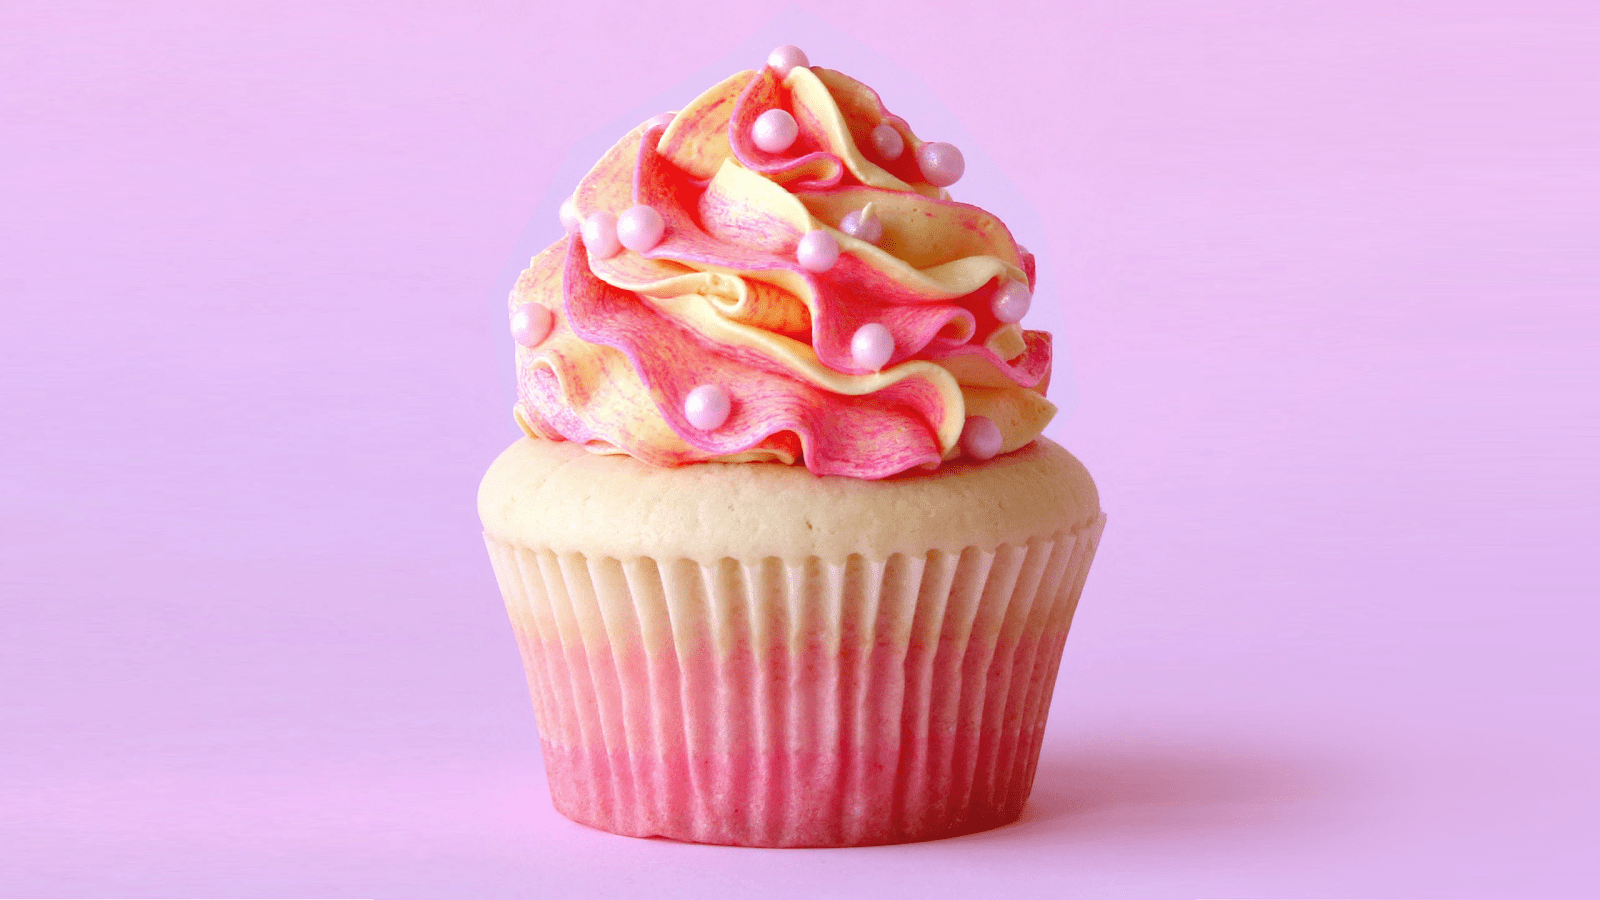 What's in your cupcake?